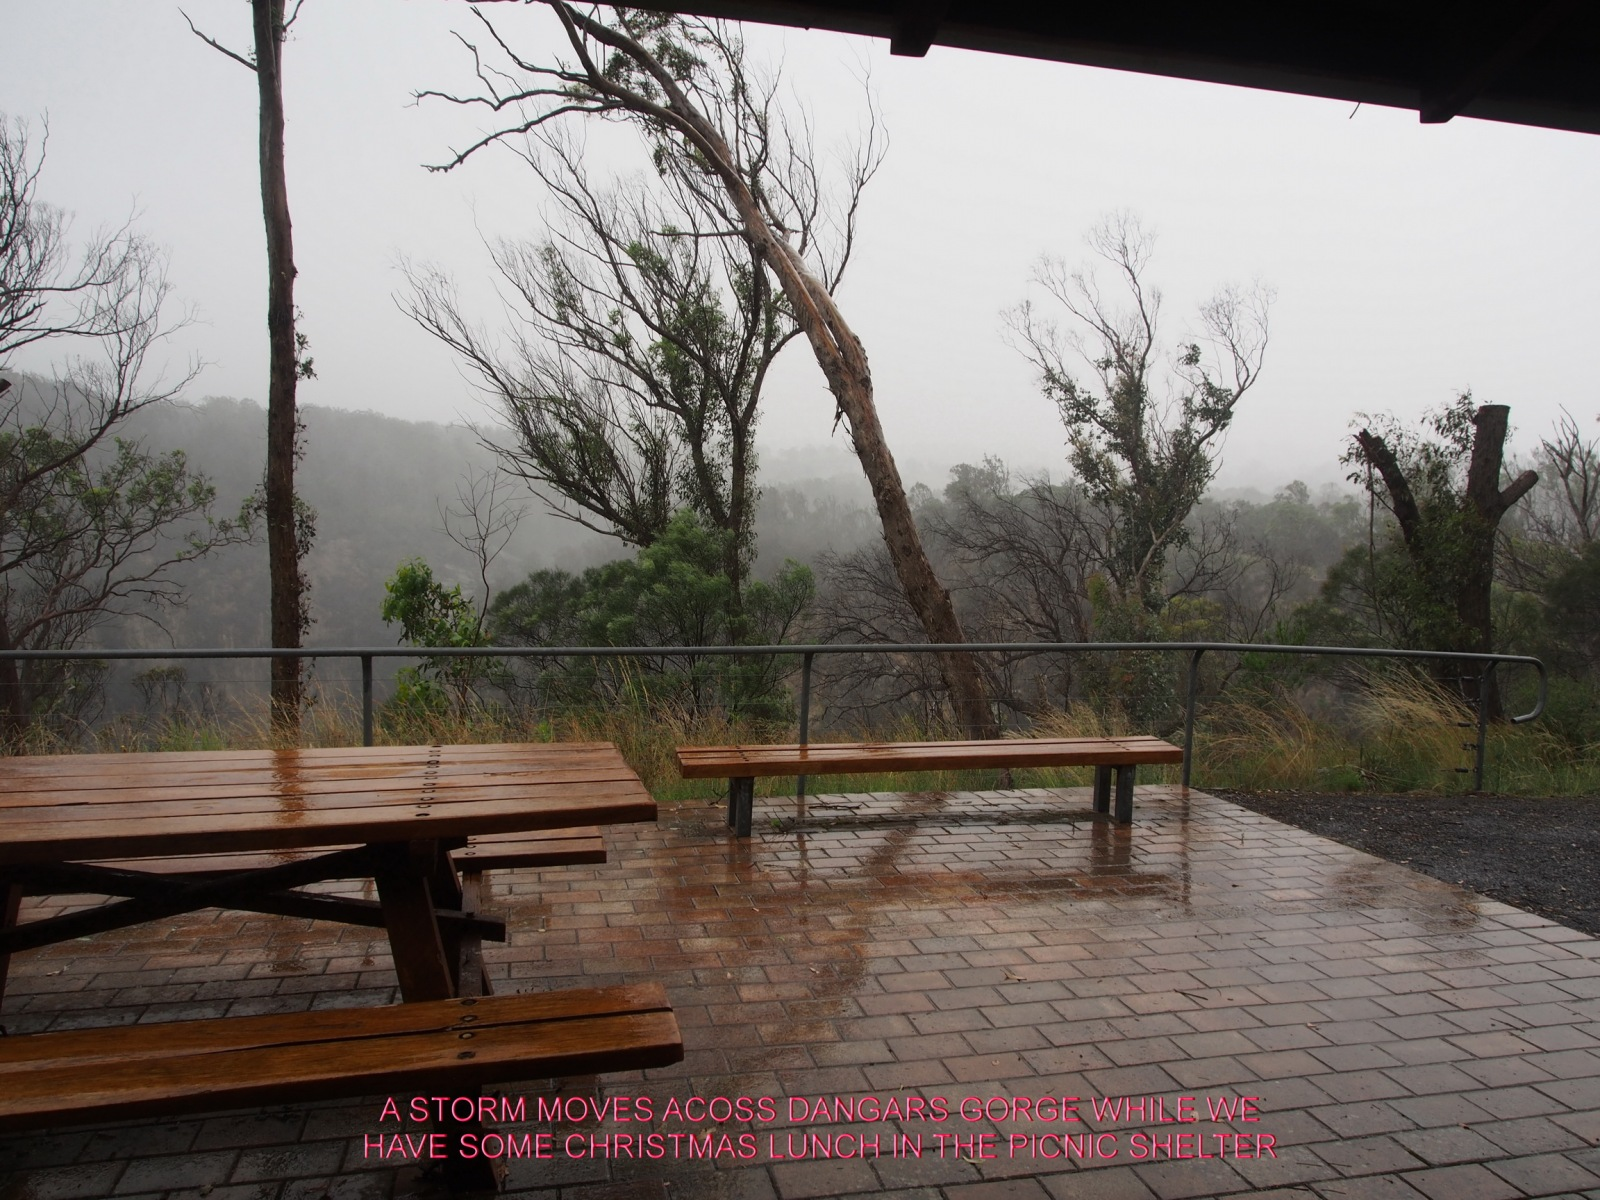 A STORM MOVES ACOSS DANGARS GORGE WHILE WE HAVE SOME CHRISTMAS LUNCH IN THE PICNIC SHELTER